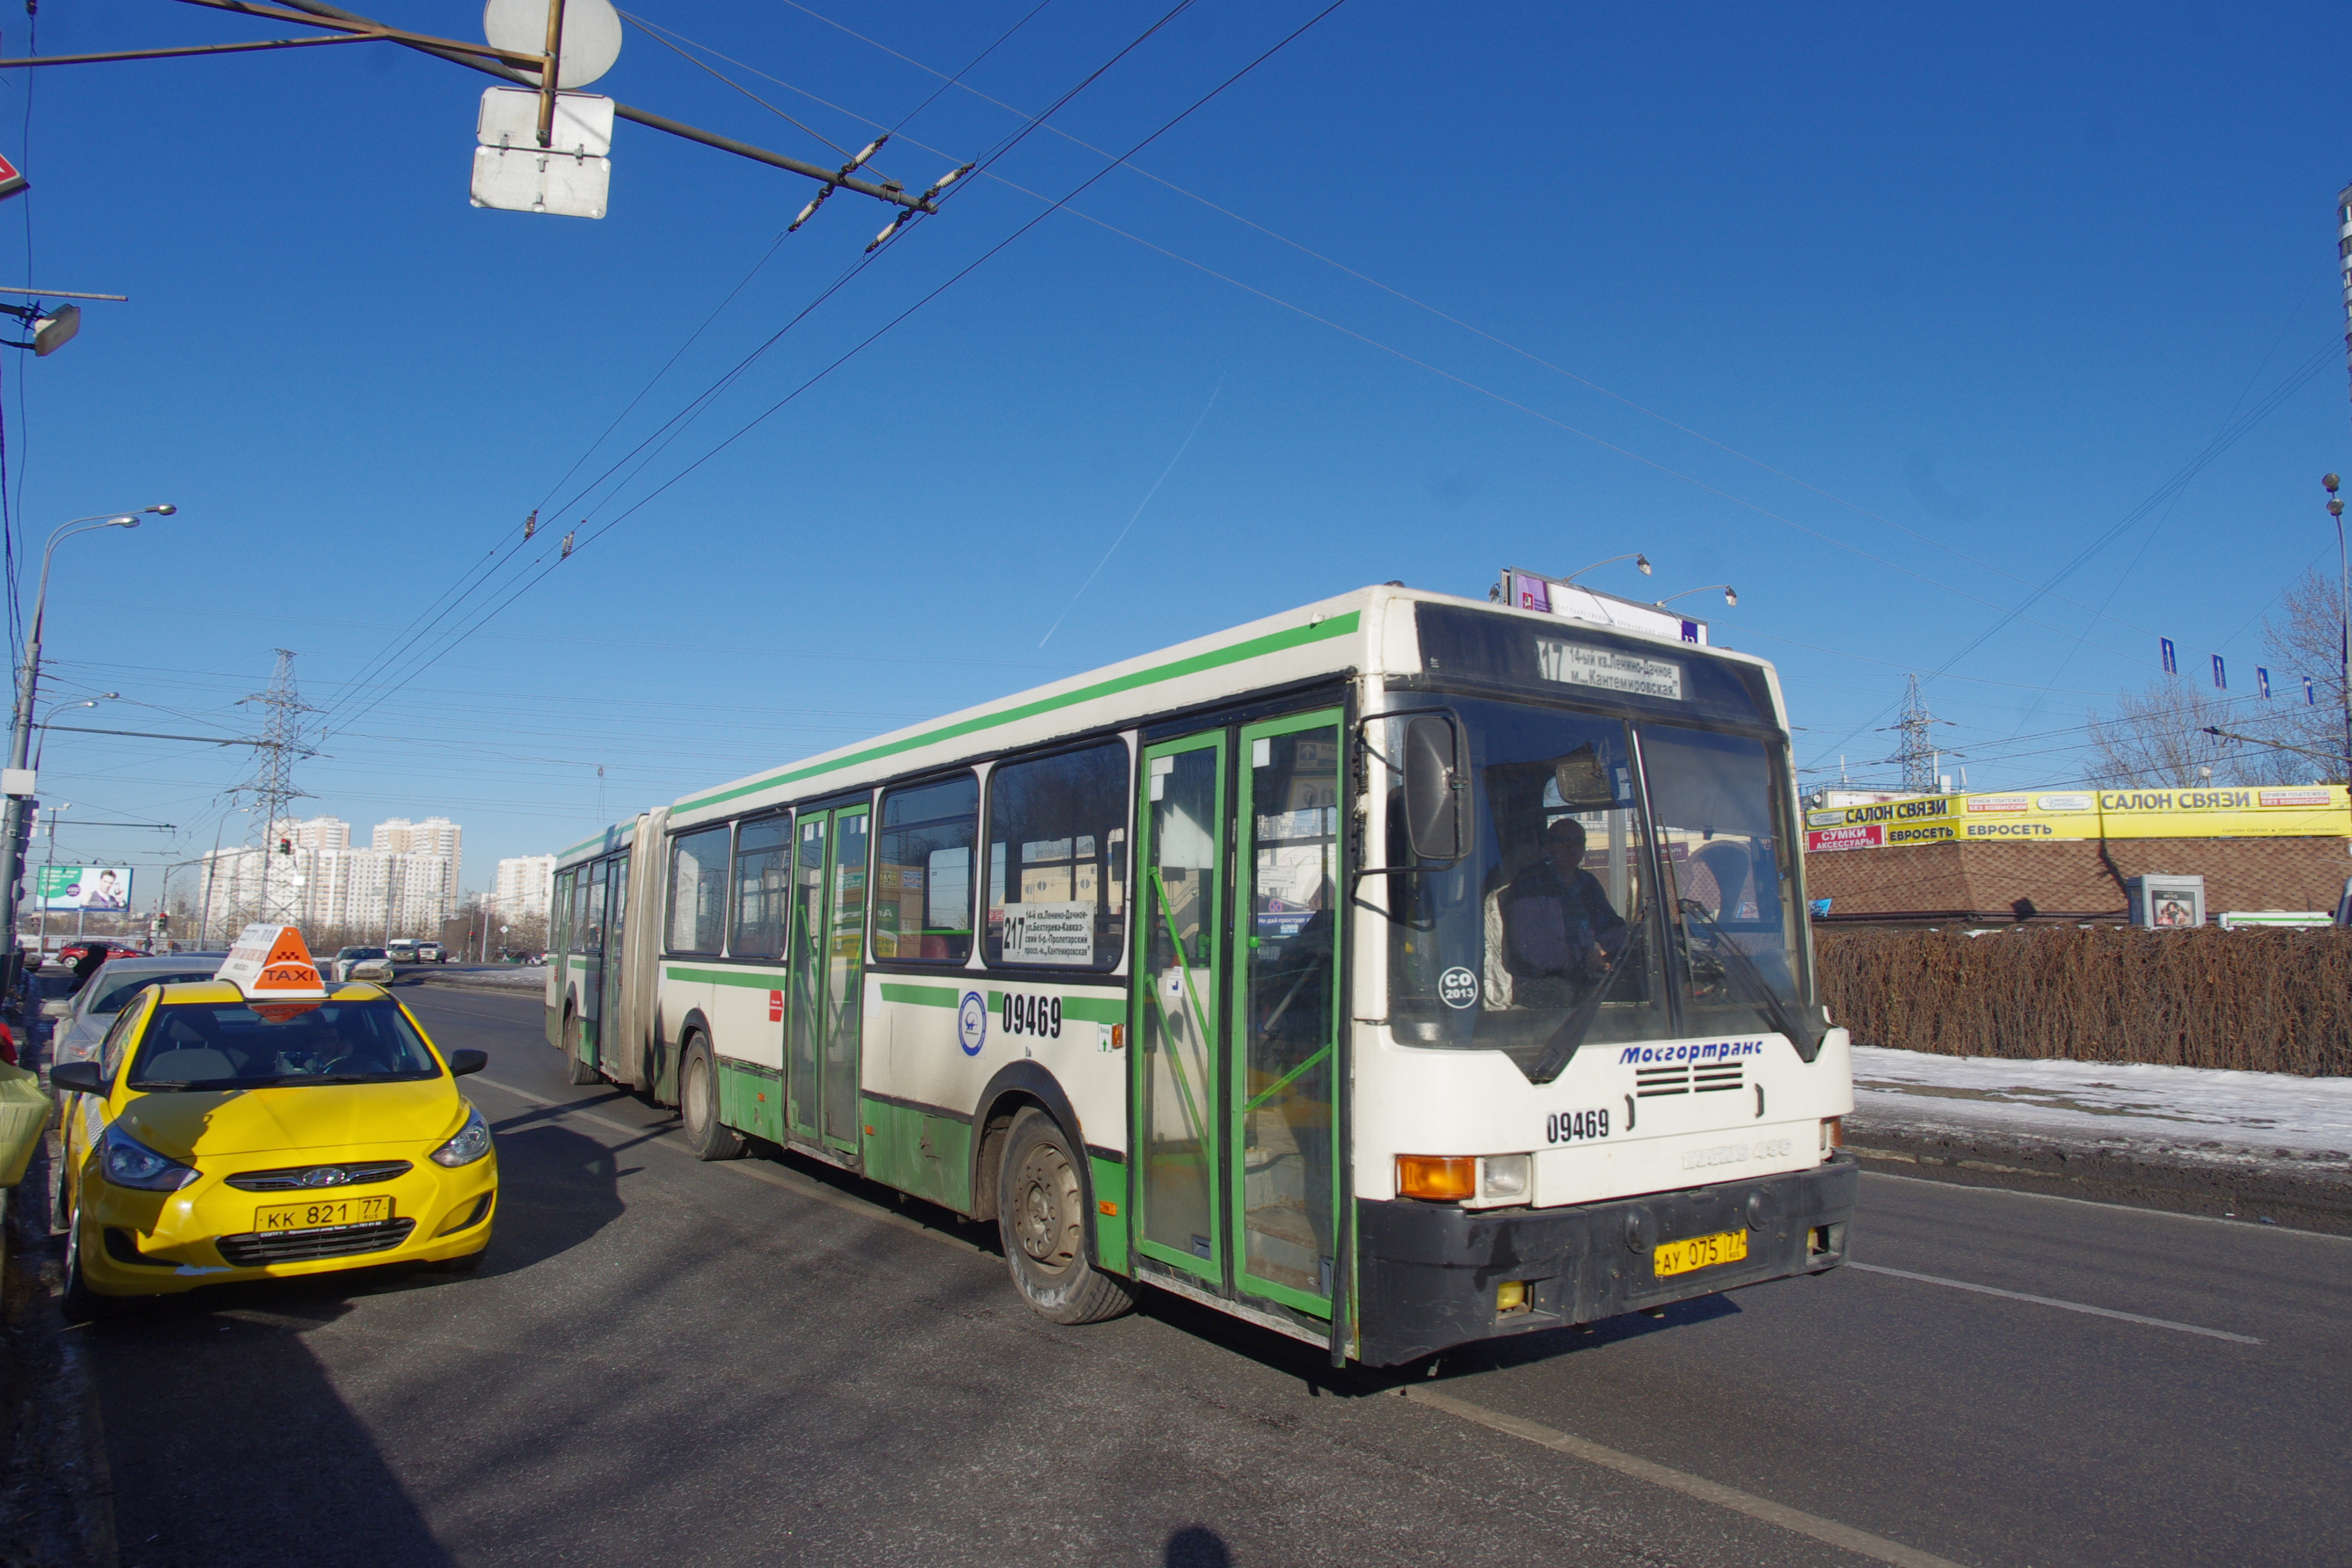 file:moscow bus ikarus-435 09469 (16537502196) - wikimedia commons